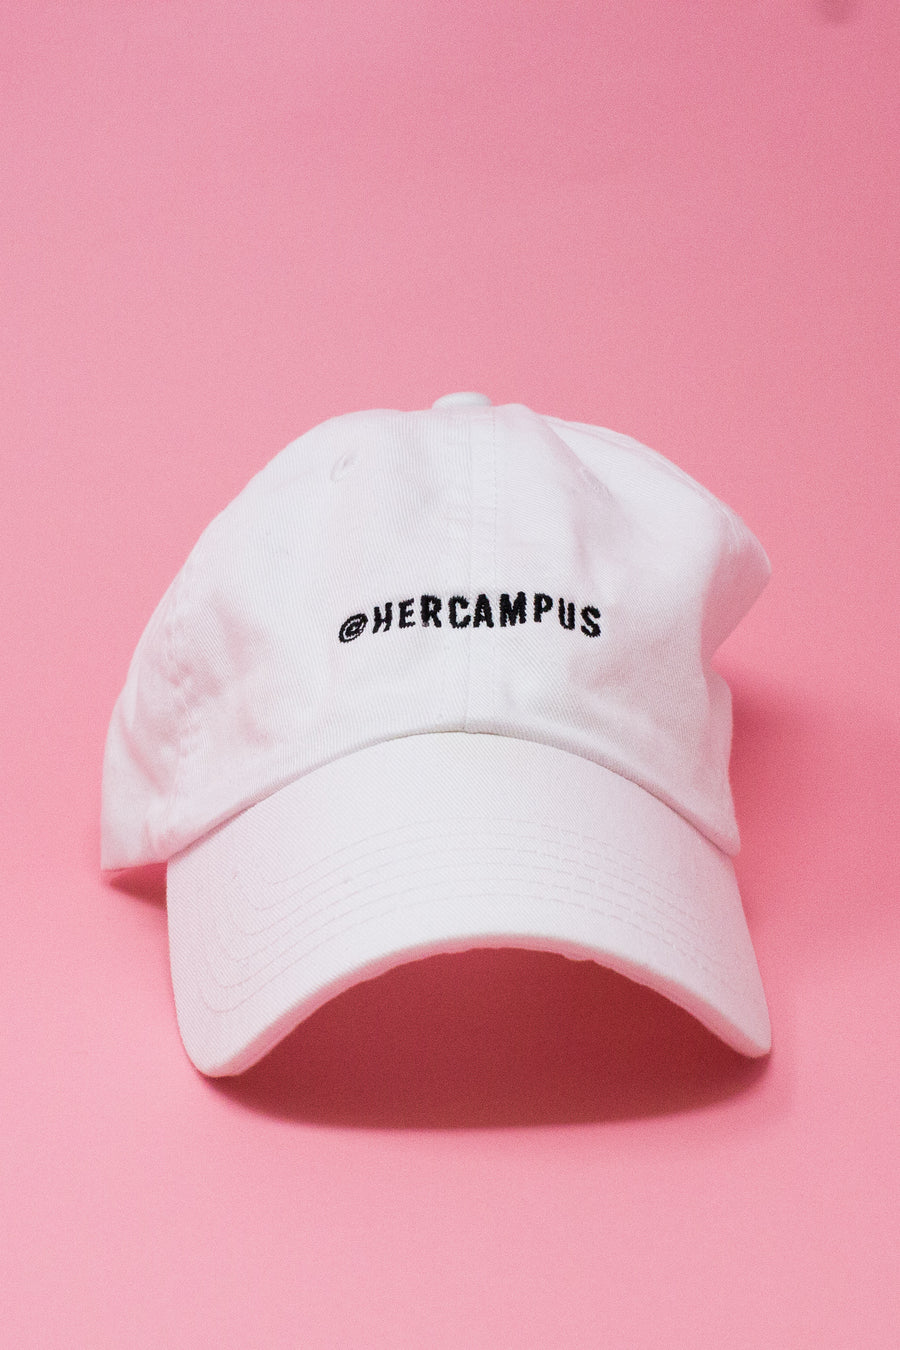 @HERCAMPUS Baseball Cap - White